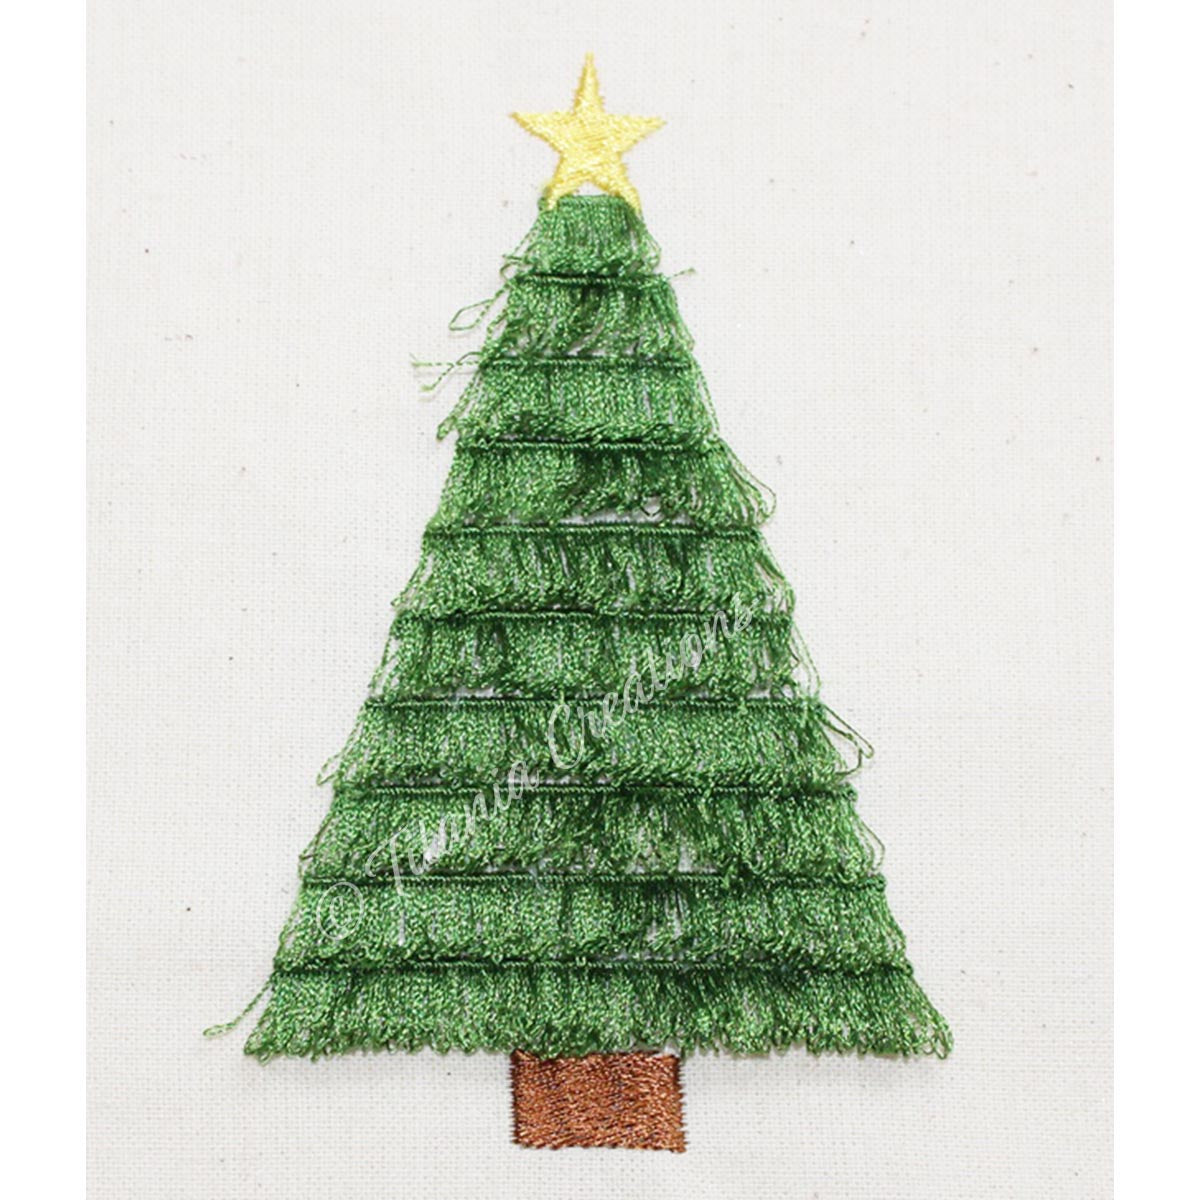 Fringe Christmas Tree 4x4